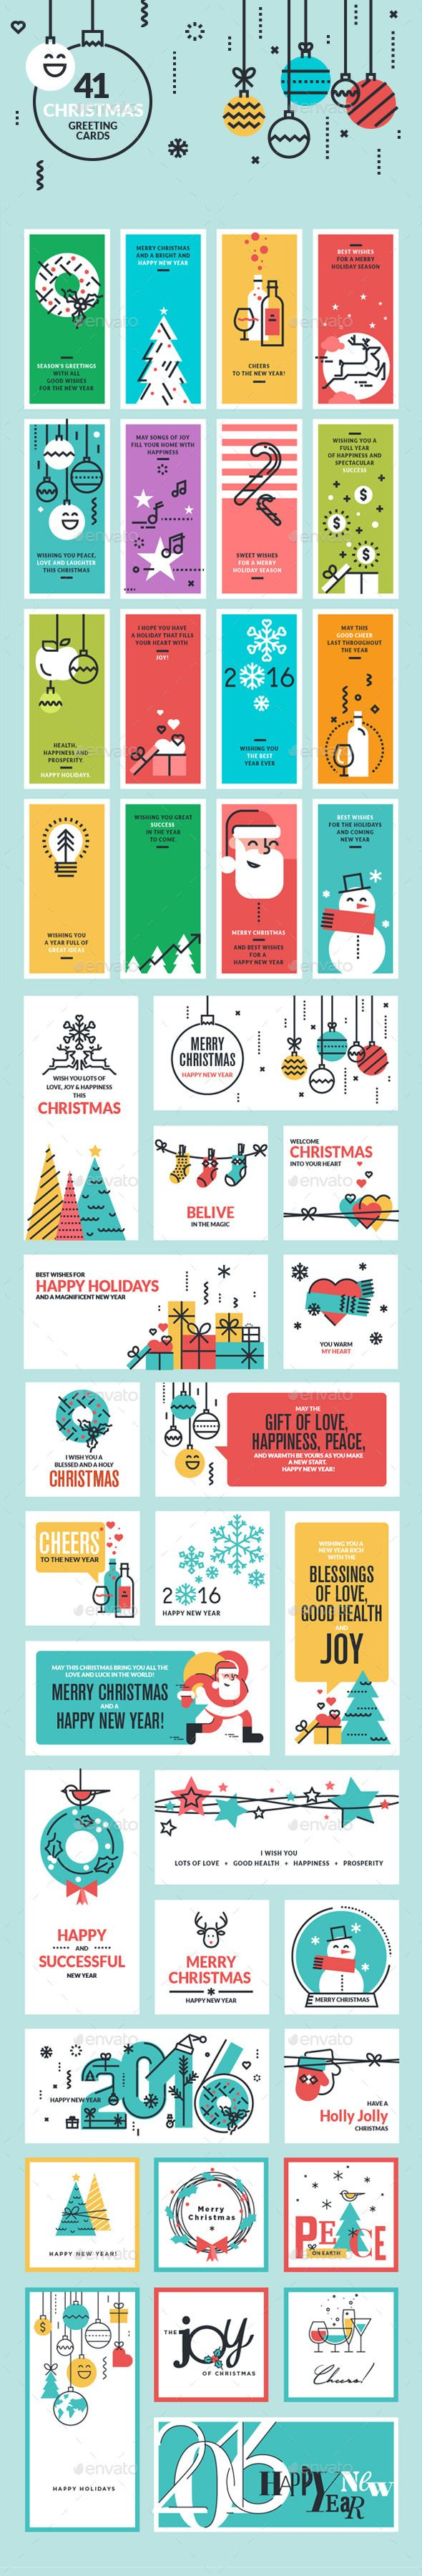 Christmas and New Year Greeting Cards and Banners PSD, Vector EPS, AI Illustrator. Download here: https://graphicriver.net/item/christmas-and-new-year-greeting-cards-and-banners/13709542?ref=ksioks